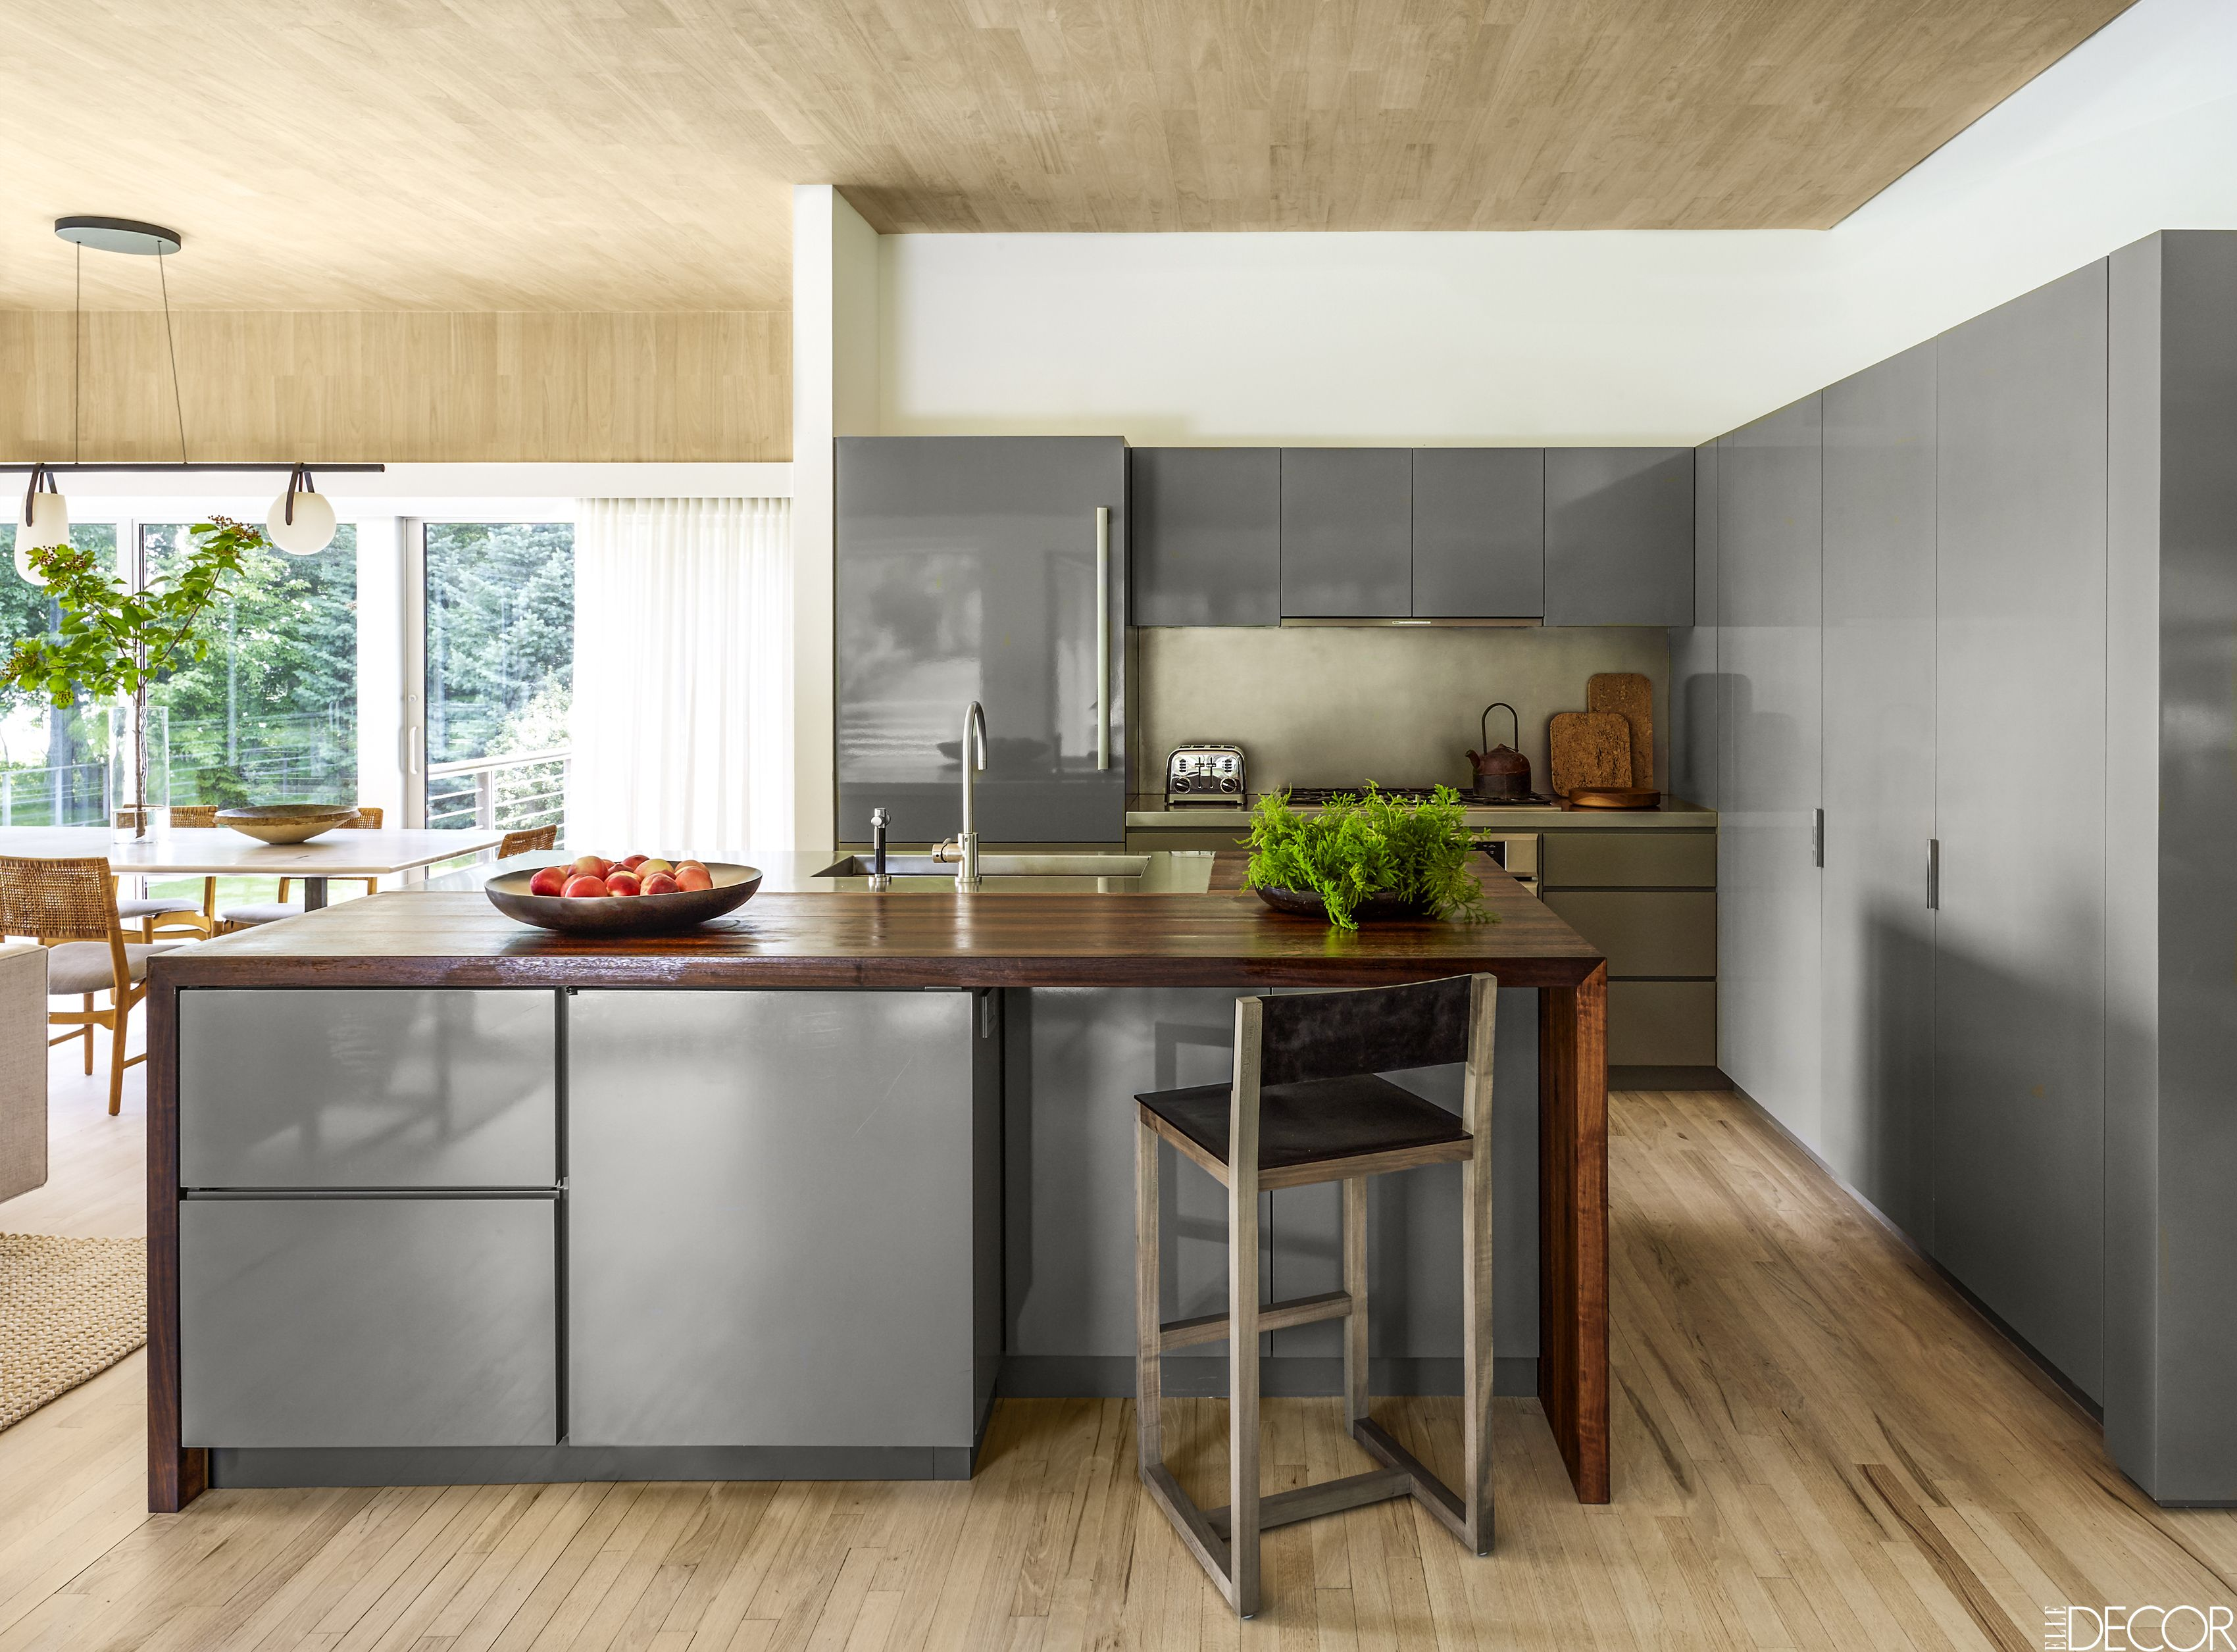 The 20 most beautiful kitchen ideas marcos kitchen - The most beautiful kitchen designs ...